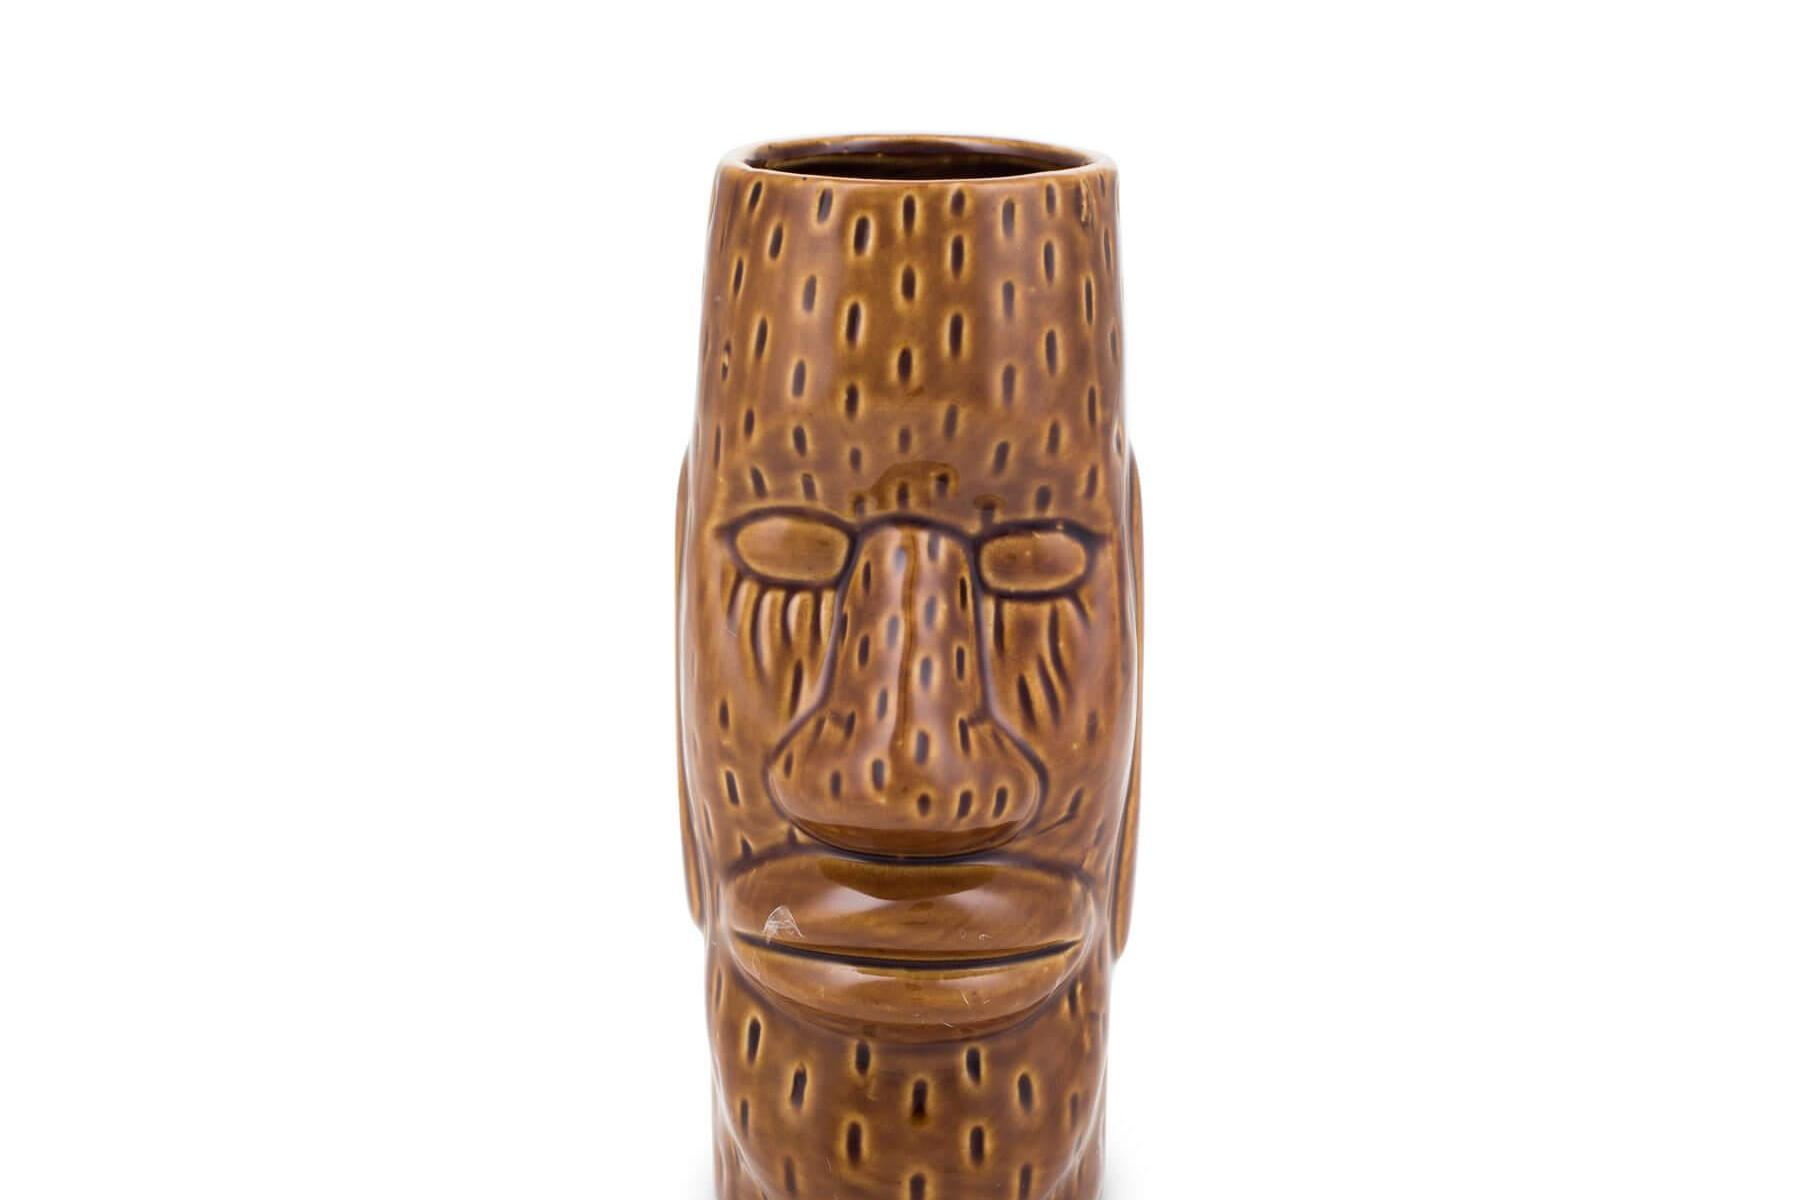 Ku Easter Island Head Ceramic Tiki Mug (450 ml) Fifth & Vermouth Front View